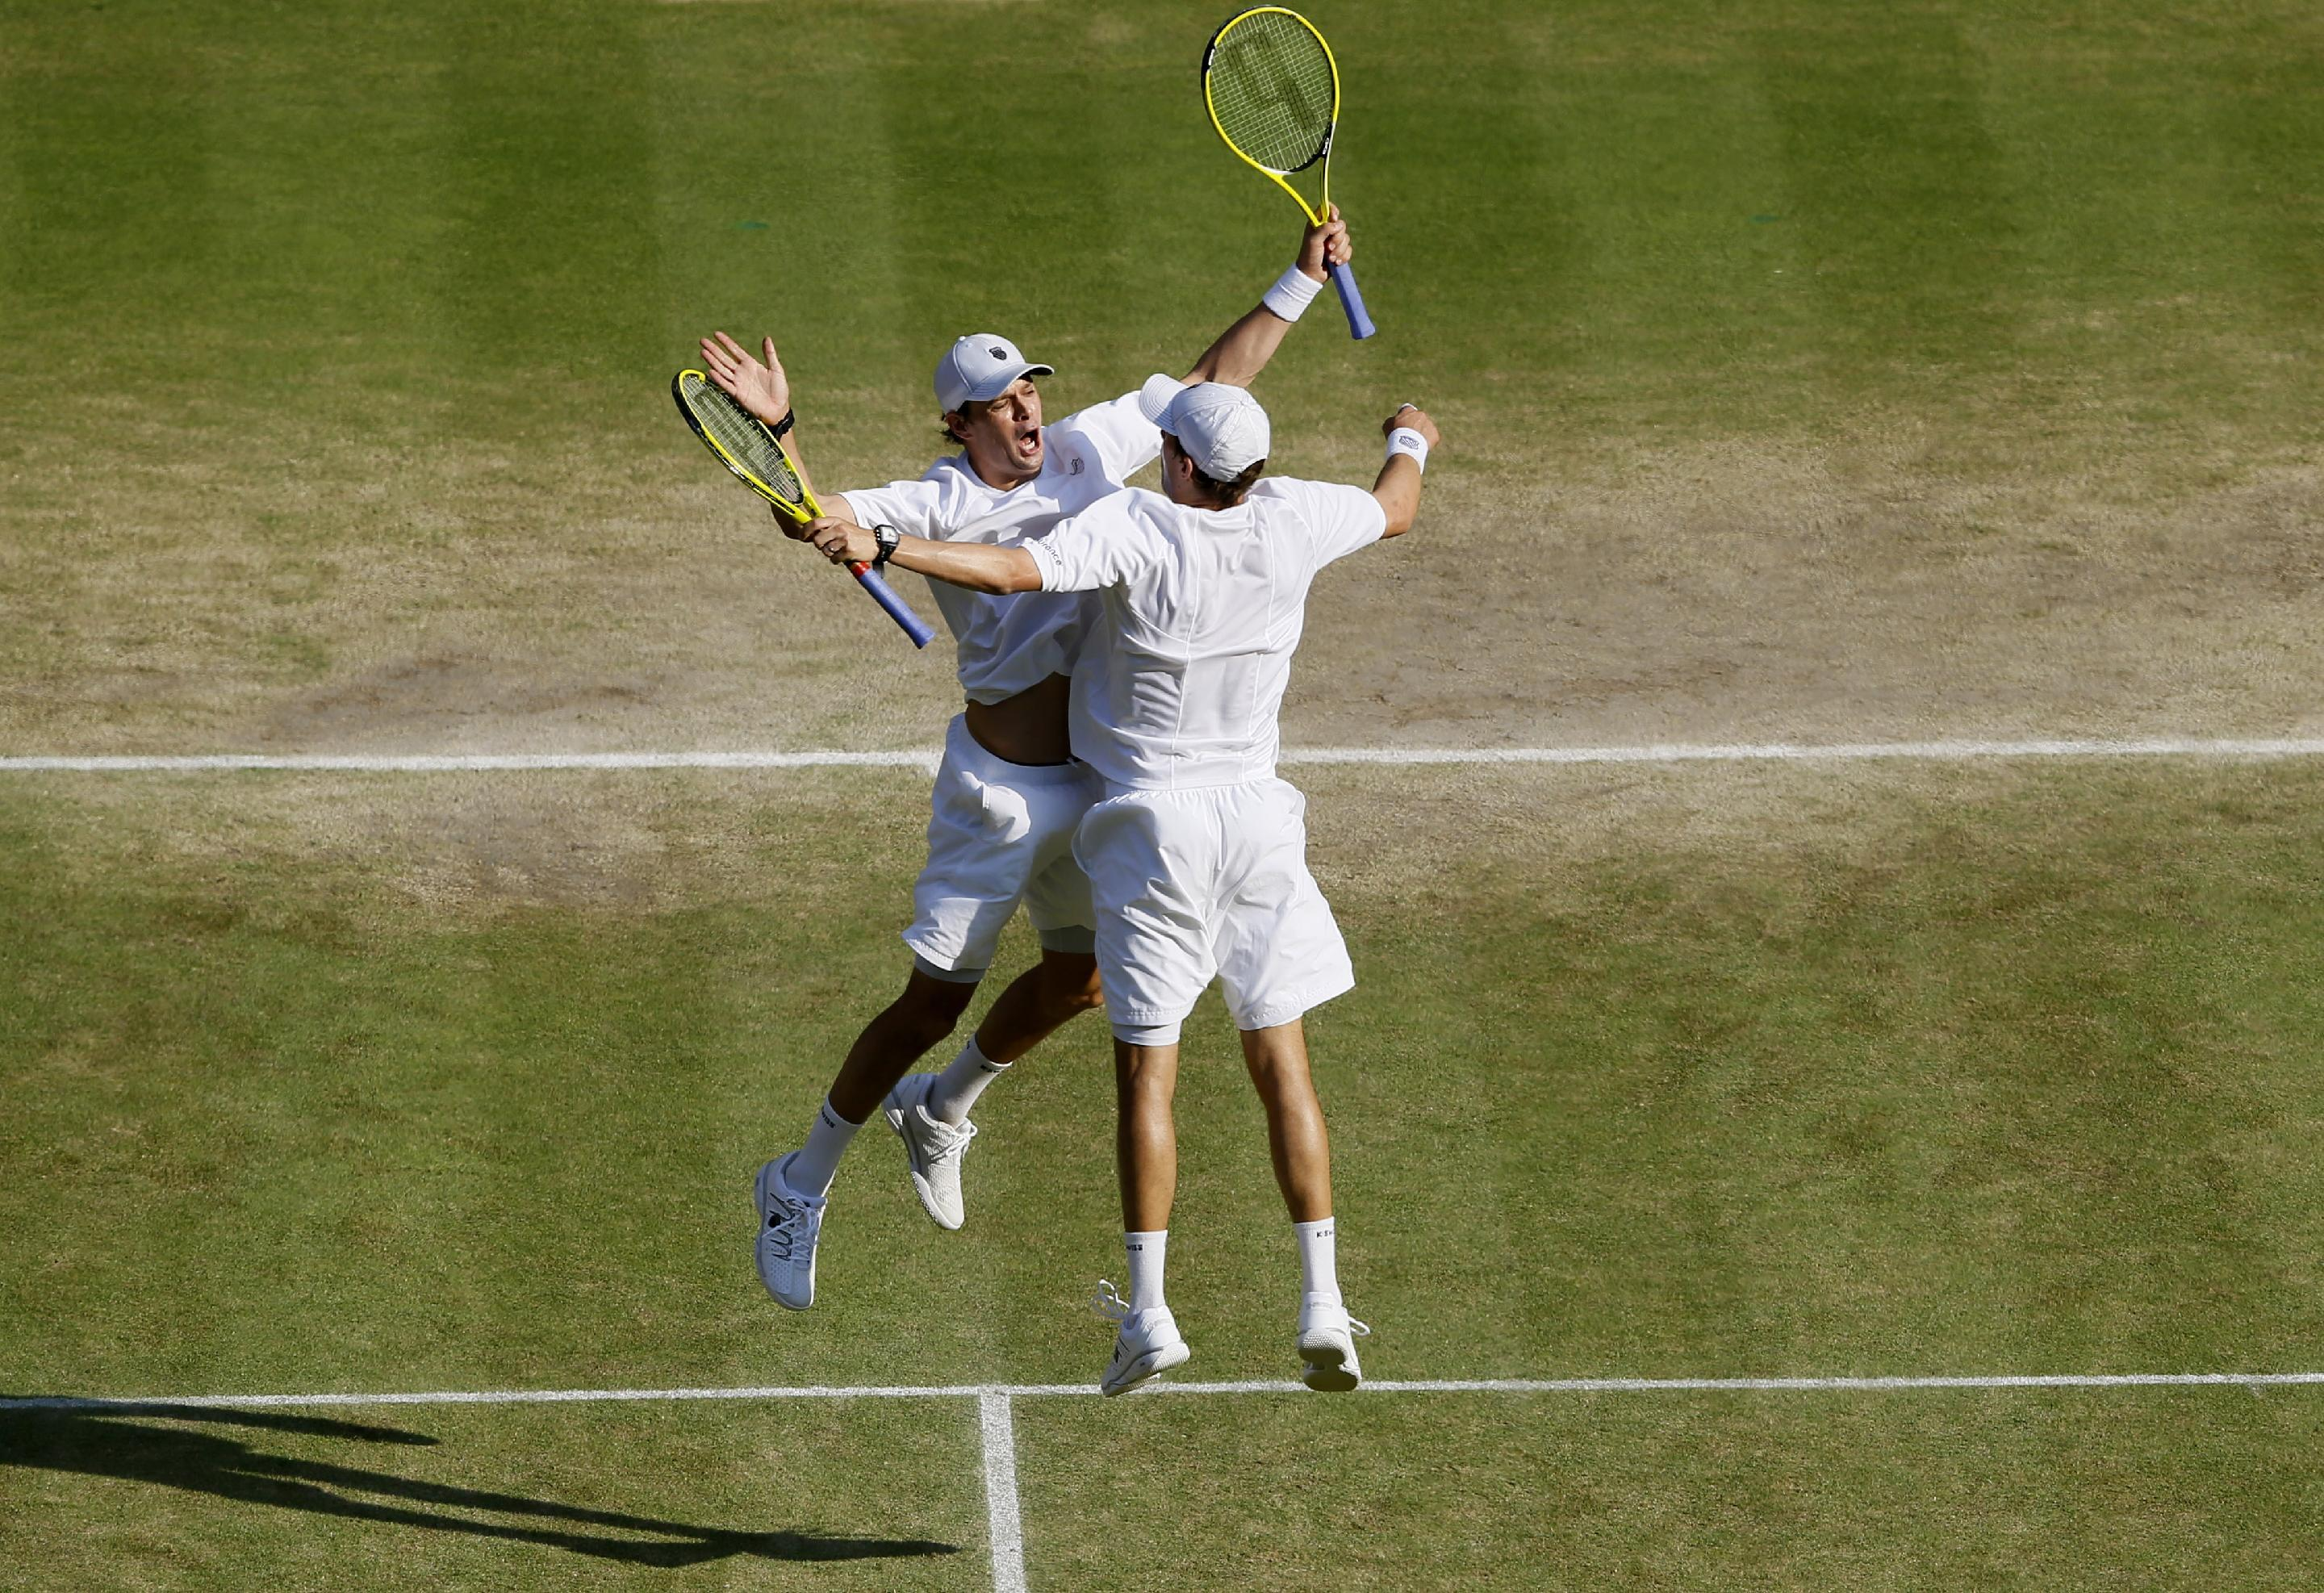 Bob Bryan and Mike Bryan of the United States celebrate after beating Ivan Dodig of Croatia and Marcelo Melo Brazil to win the Men's doubles final match at the All England Lawn Tennis Championships in Wimbledon, London, Saturday, July 6, 2013. (AP Photo/Kirsty Wigglesworth)